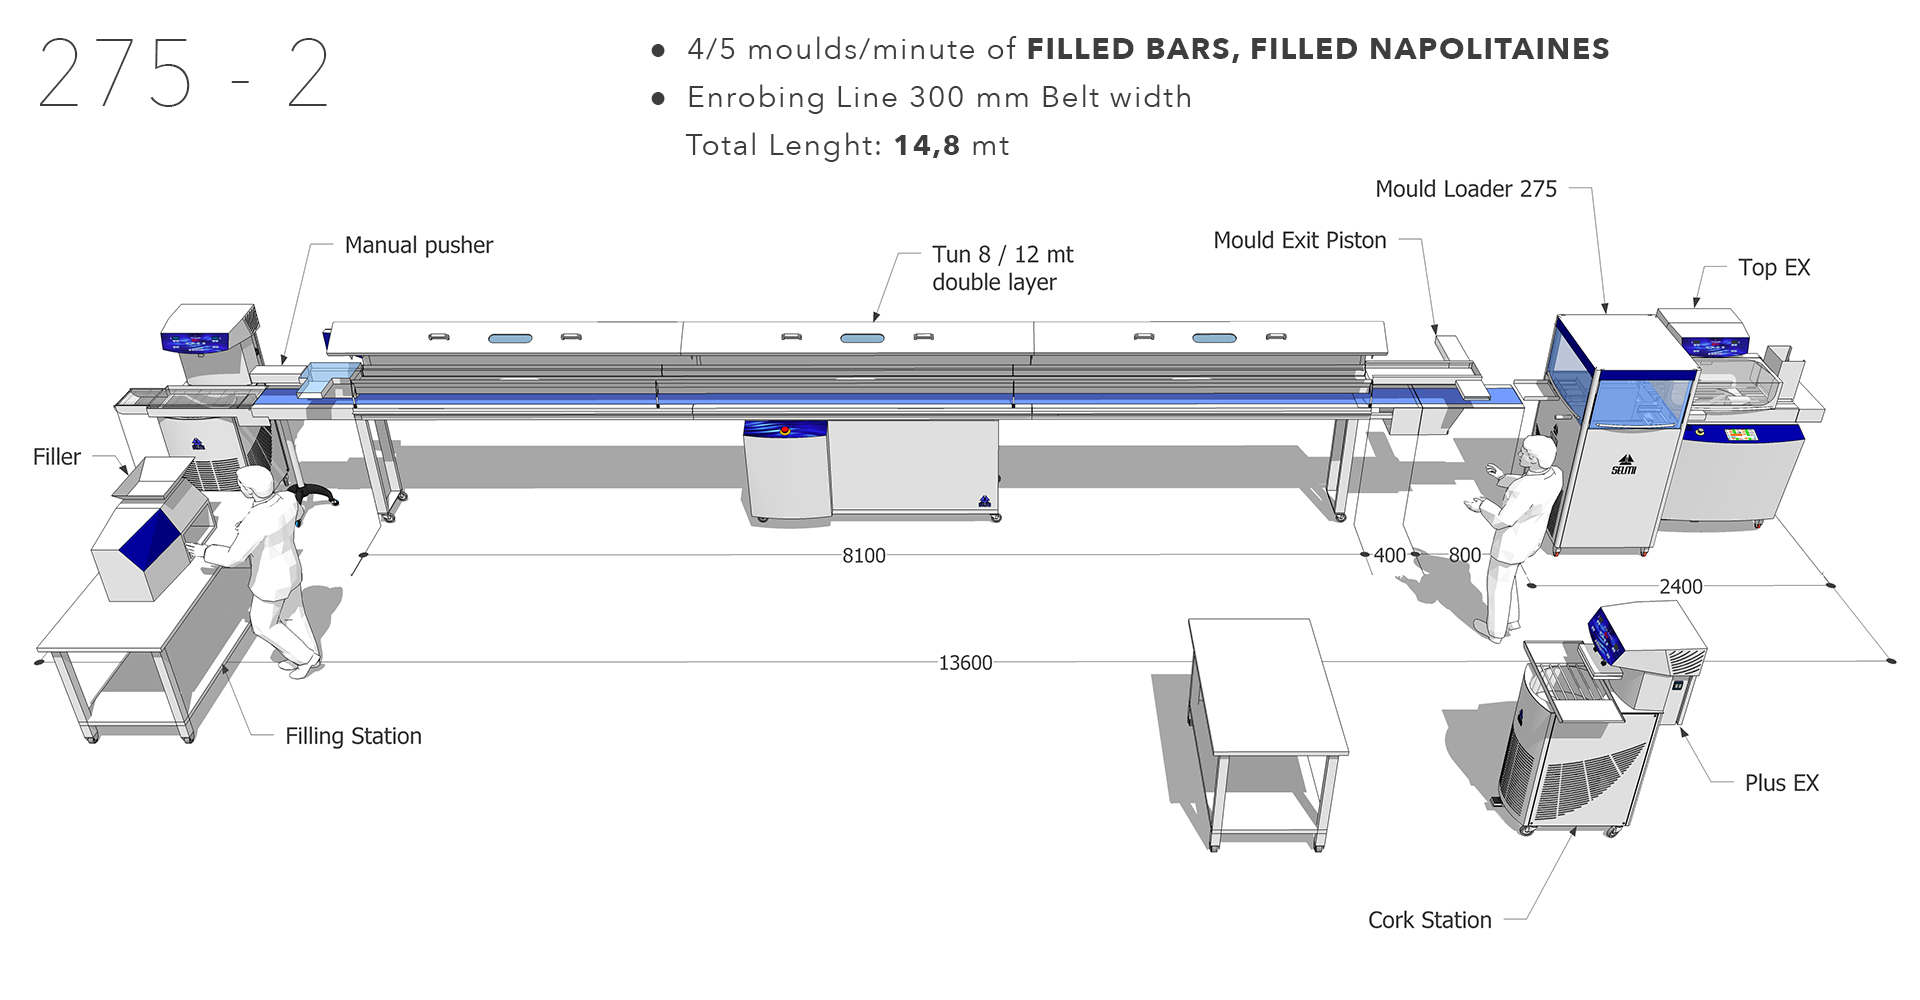 Moulding Line 275: 14,8 mt configuration for 4/5 moulds/minute of filled bars and filled napolitaines production